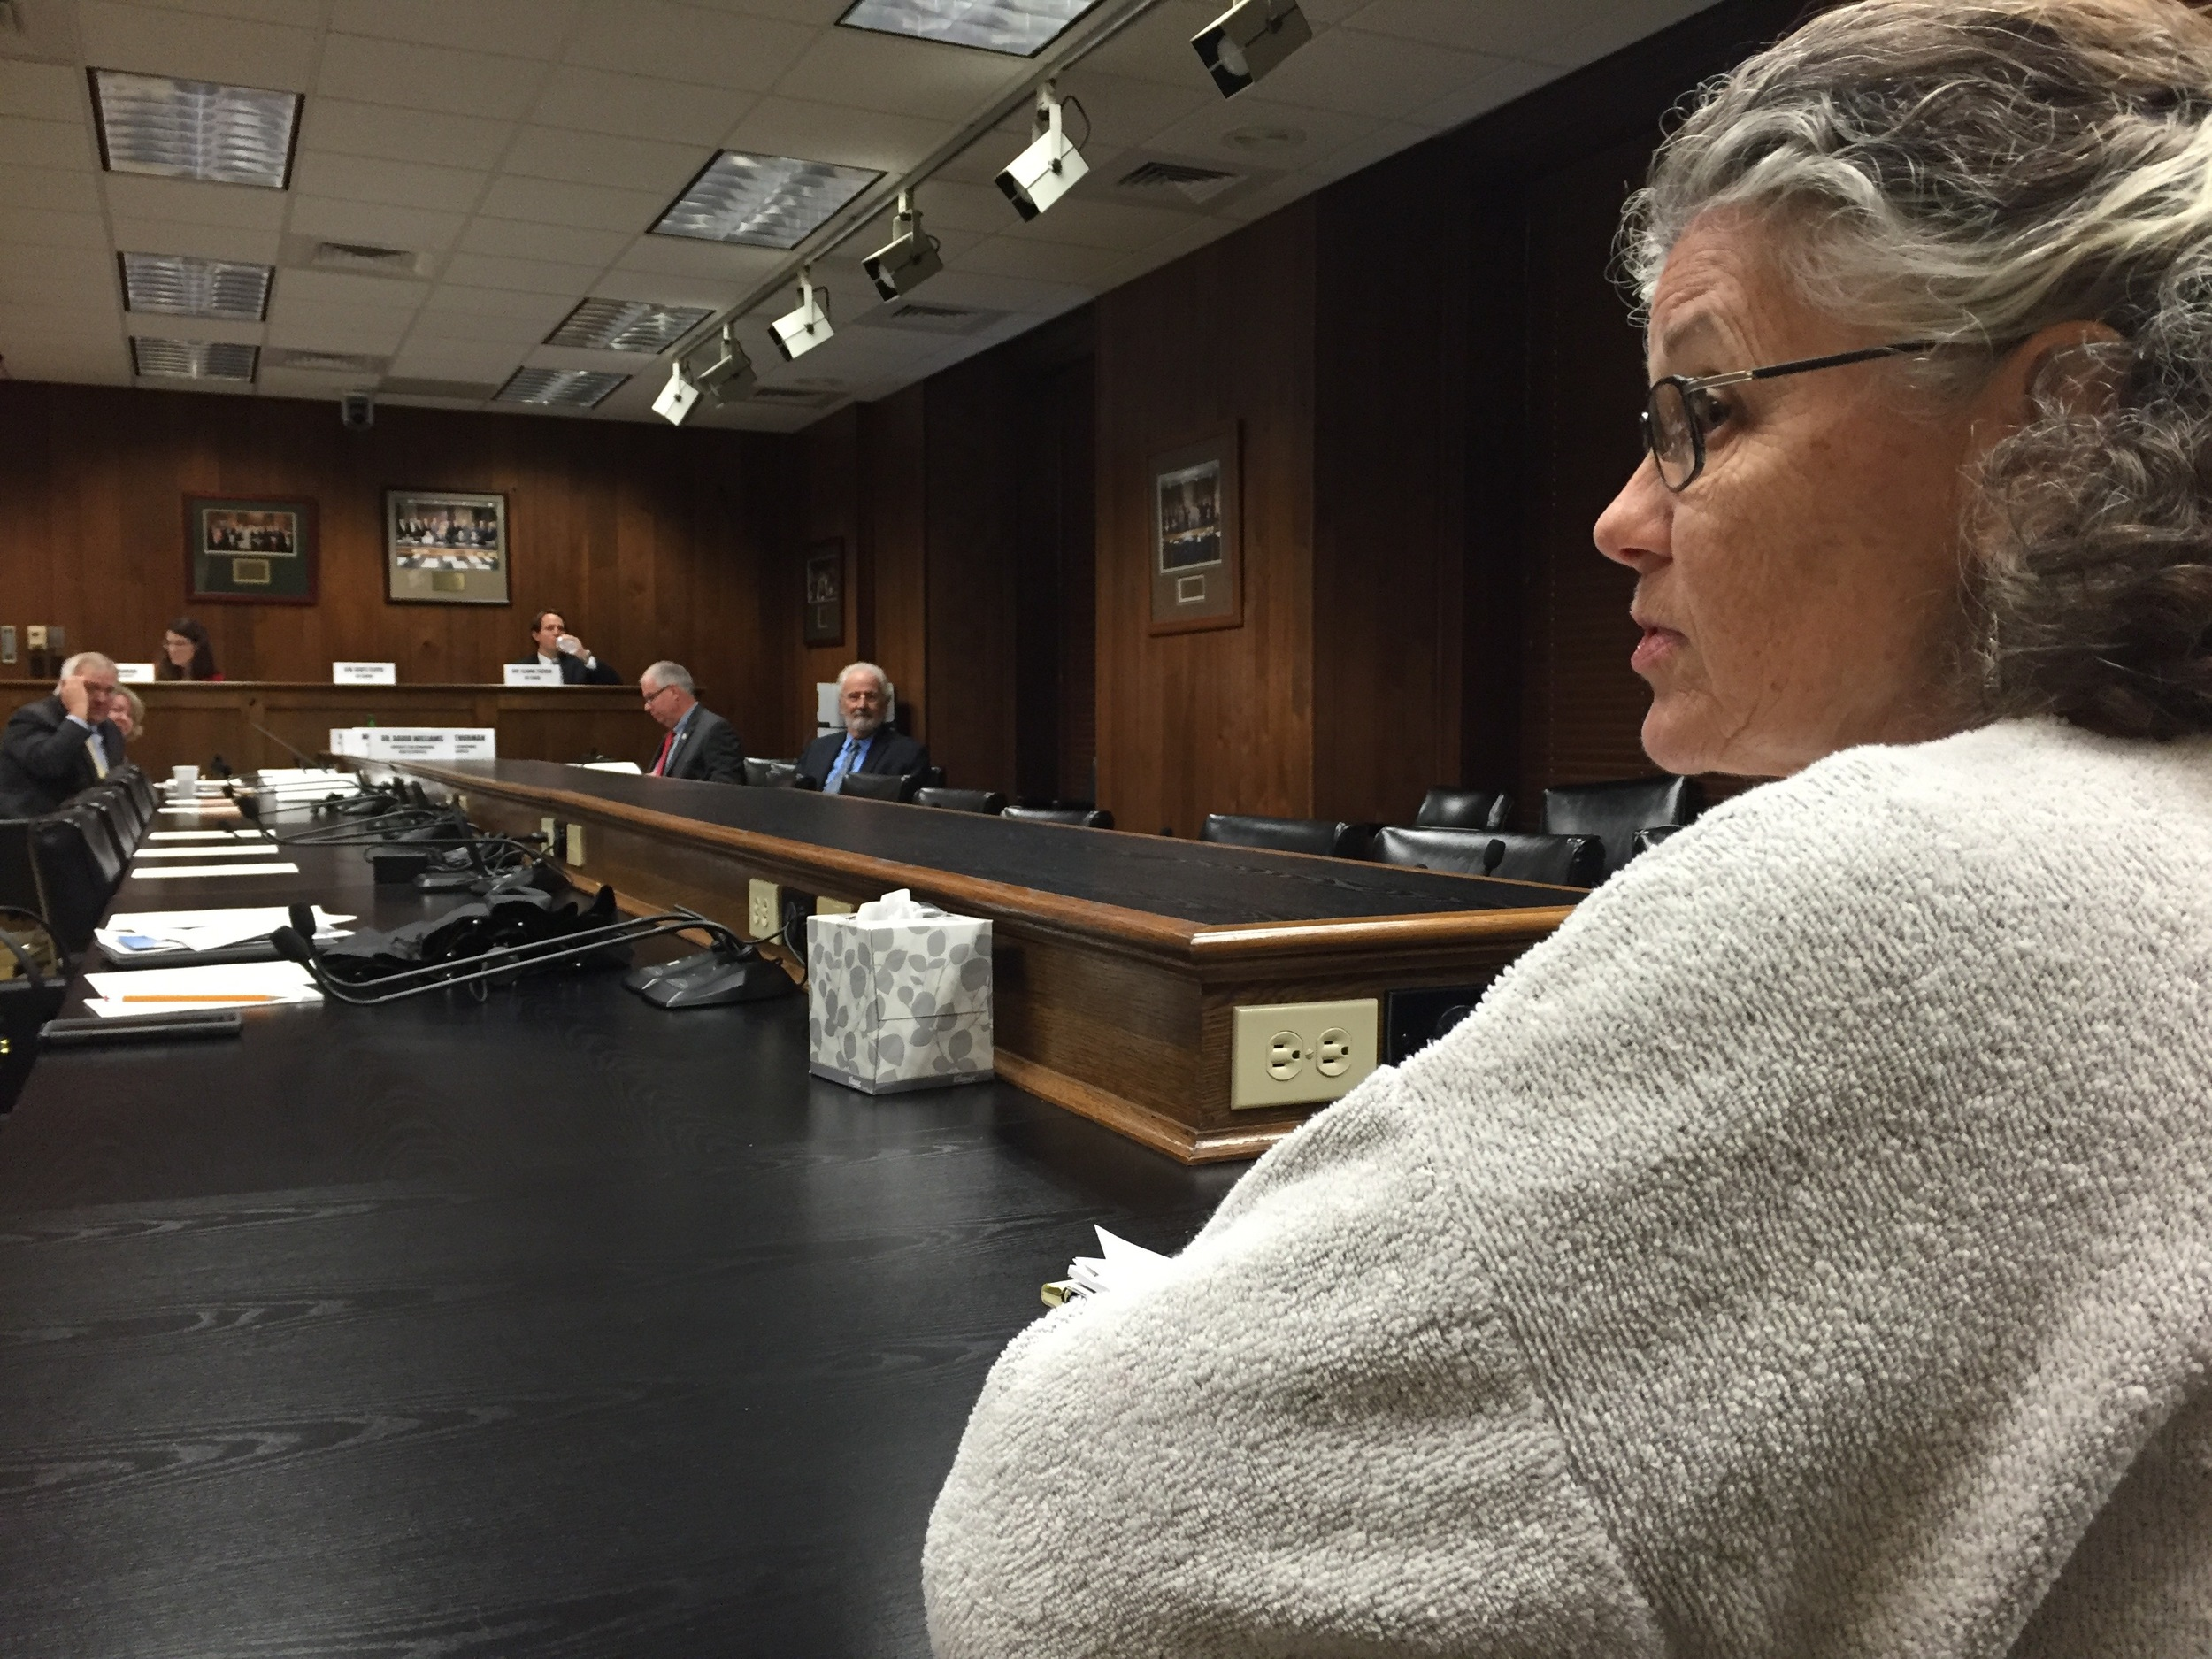 Nancy Kahanak tells the the Task Force on Behavioral Health that Arkansas can use mental health crisis centers to provide better treatment to people with mental illness at a fraction of the cost of incarceration.